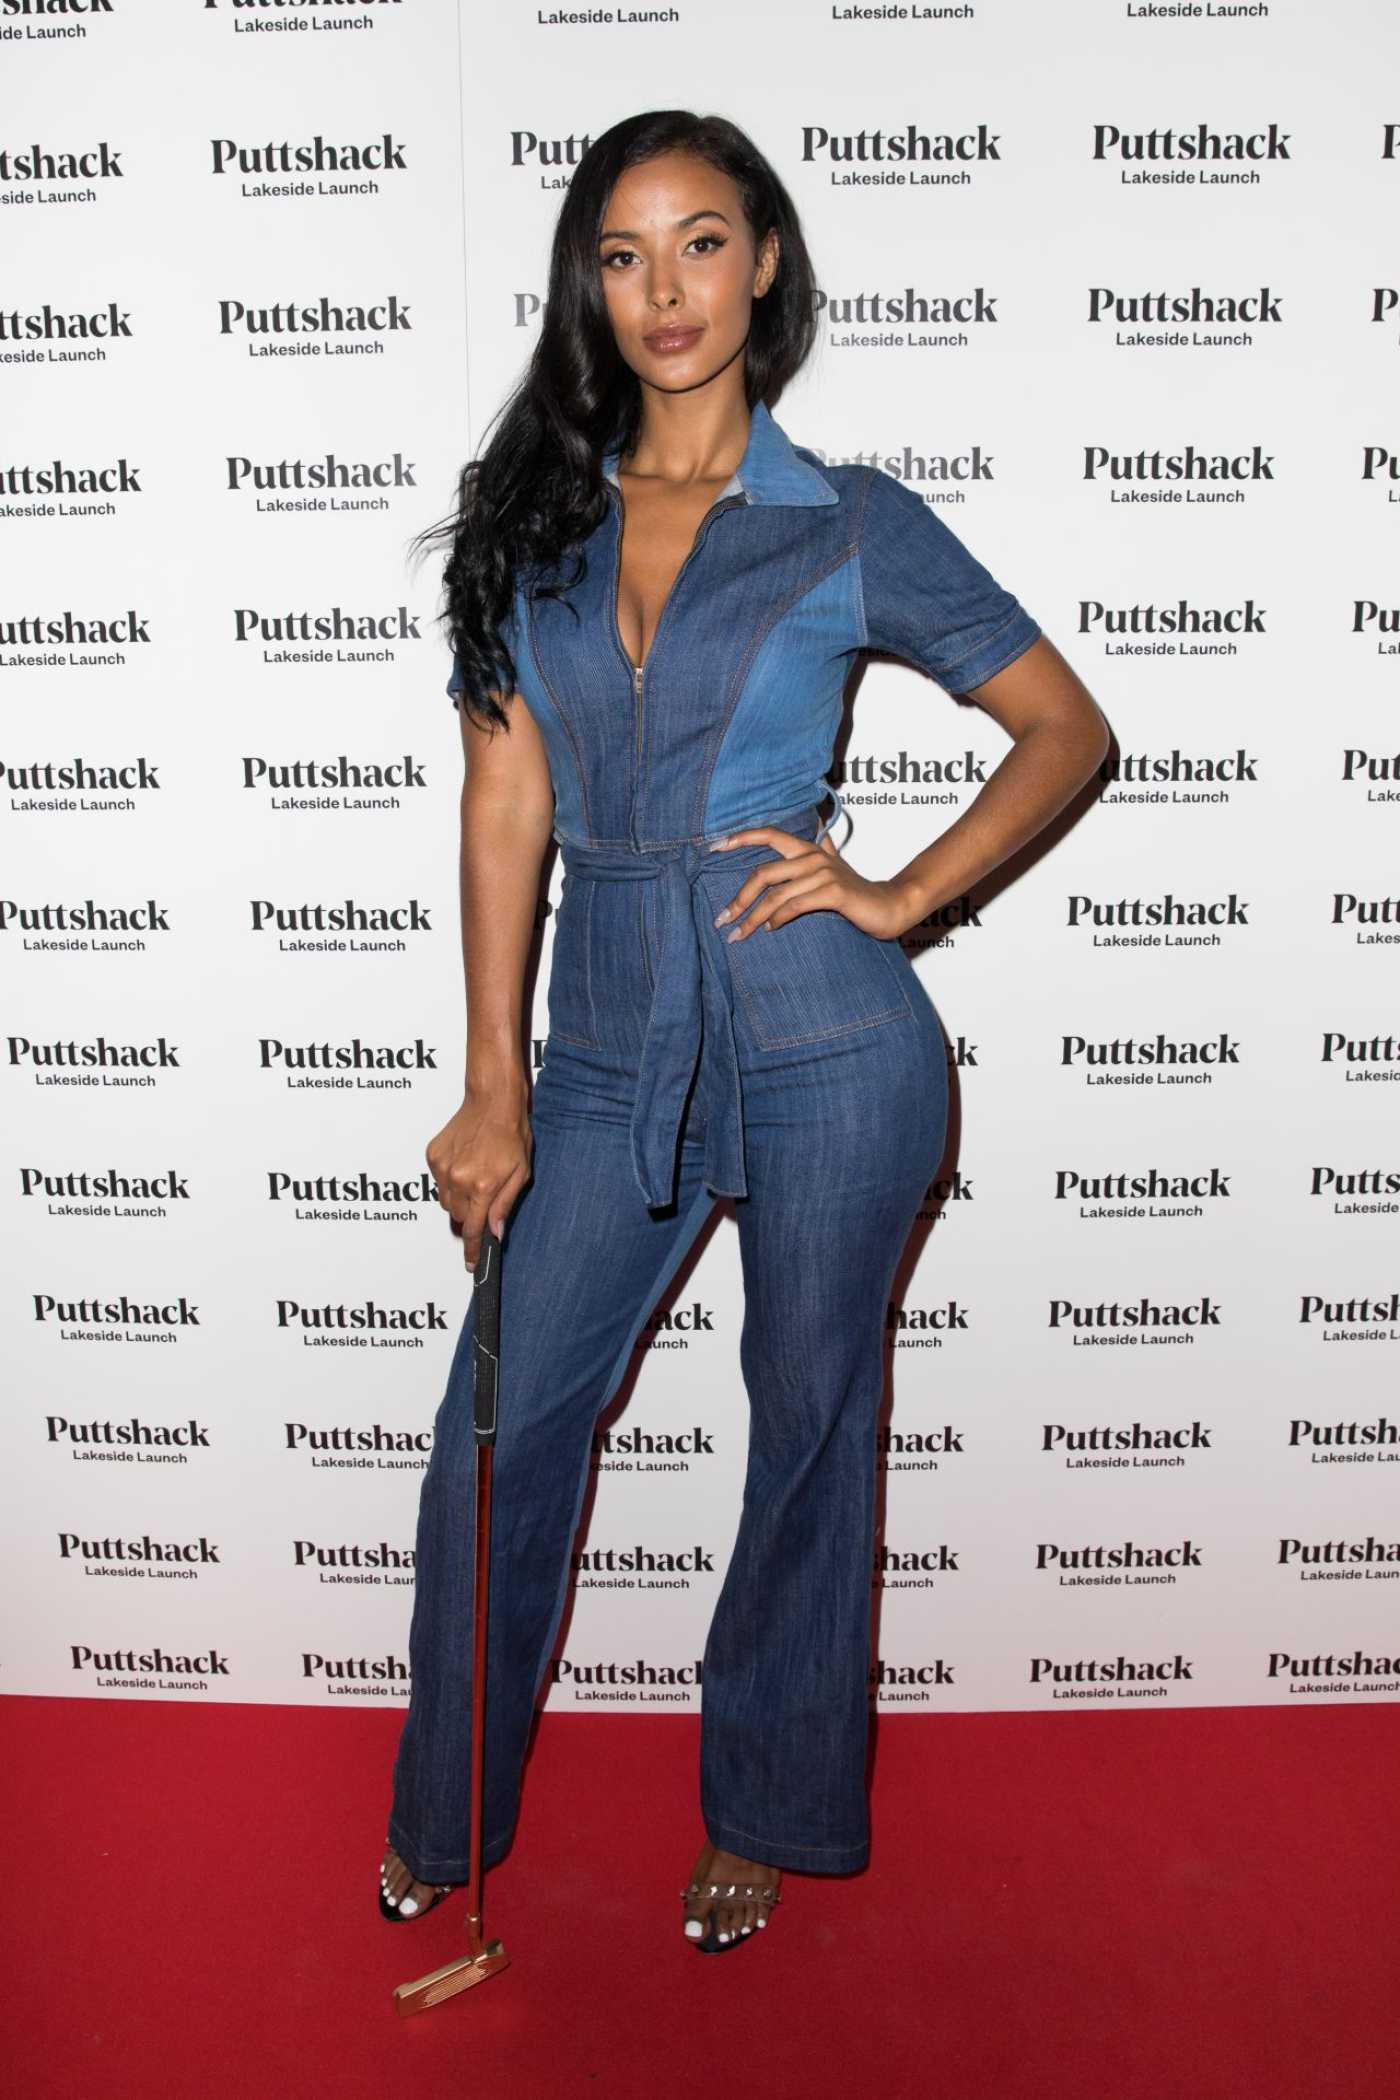 Maya Jama Attends Launch of Puttshack Lakeside in London 09/06/2019